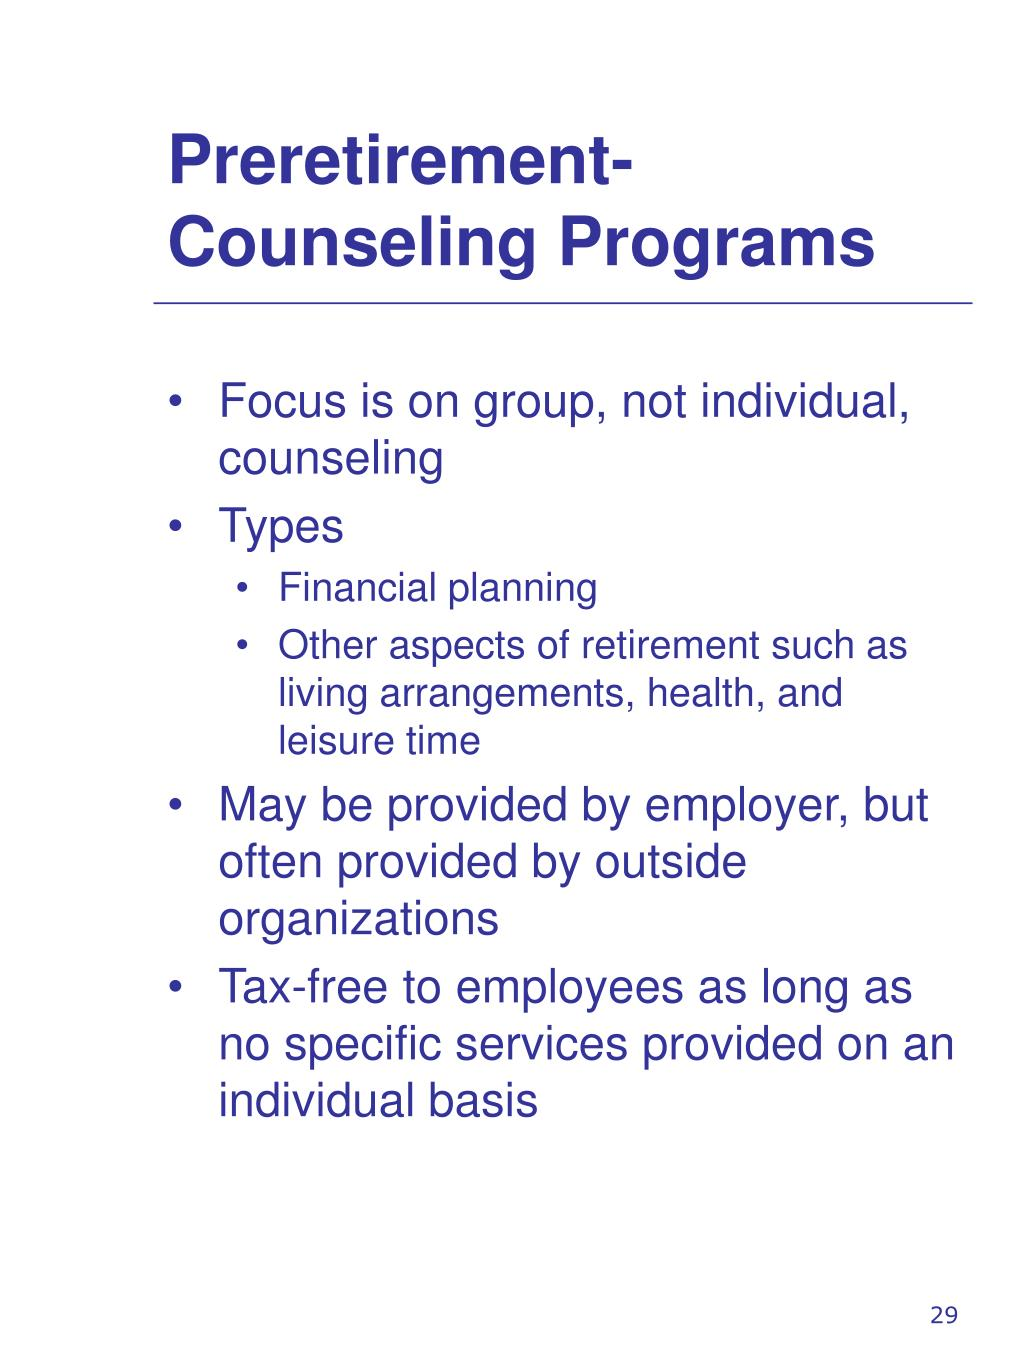 Preretirement-Counseling Programs